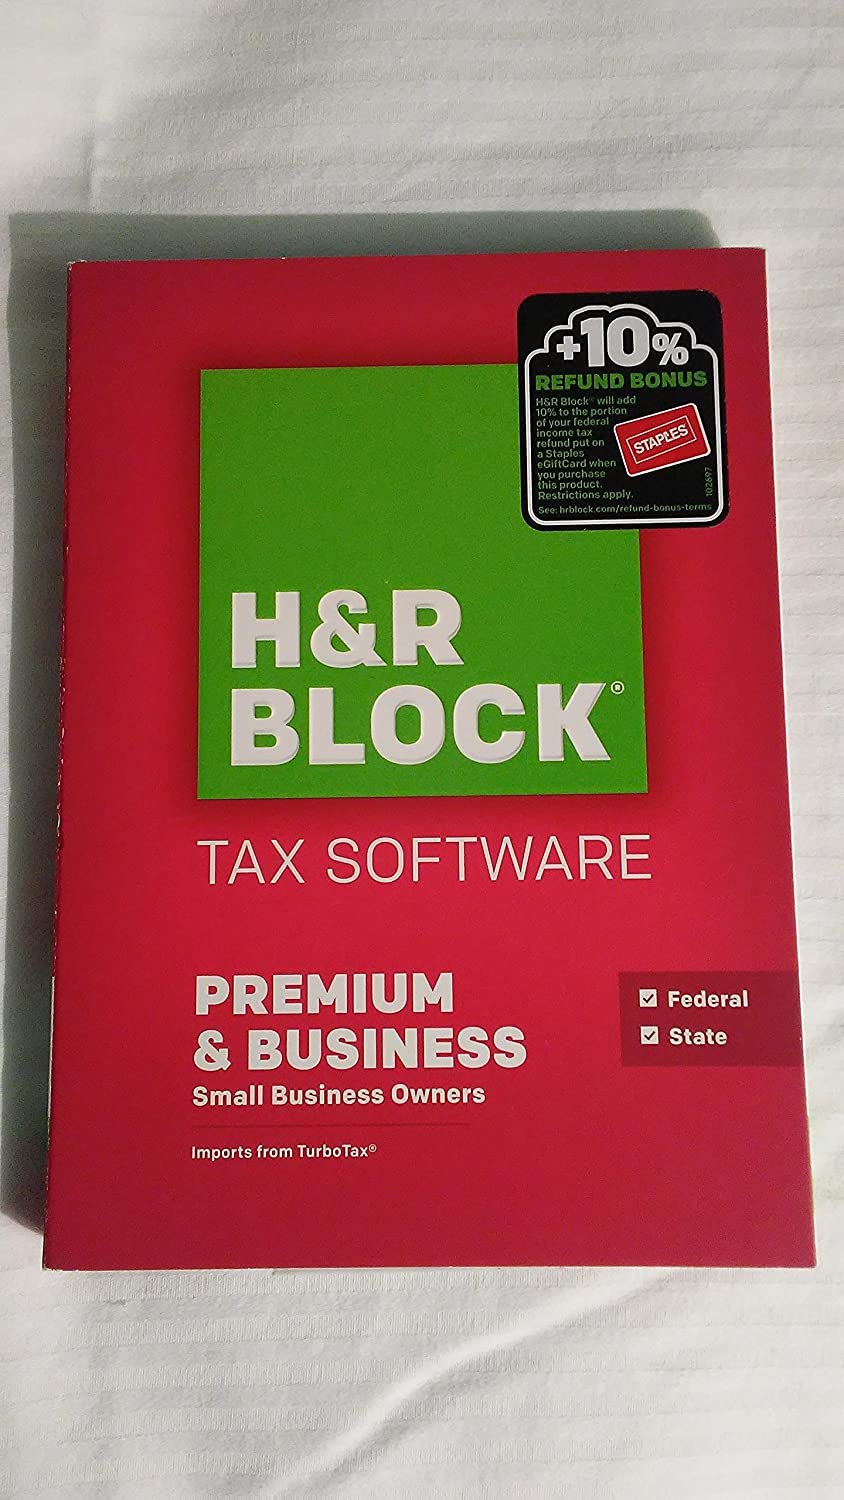 H&R Block Tax Software Premium & Business 2015 Federal & State 91uEIyL7kmL